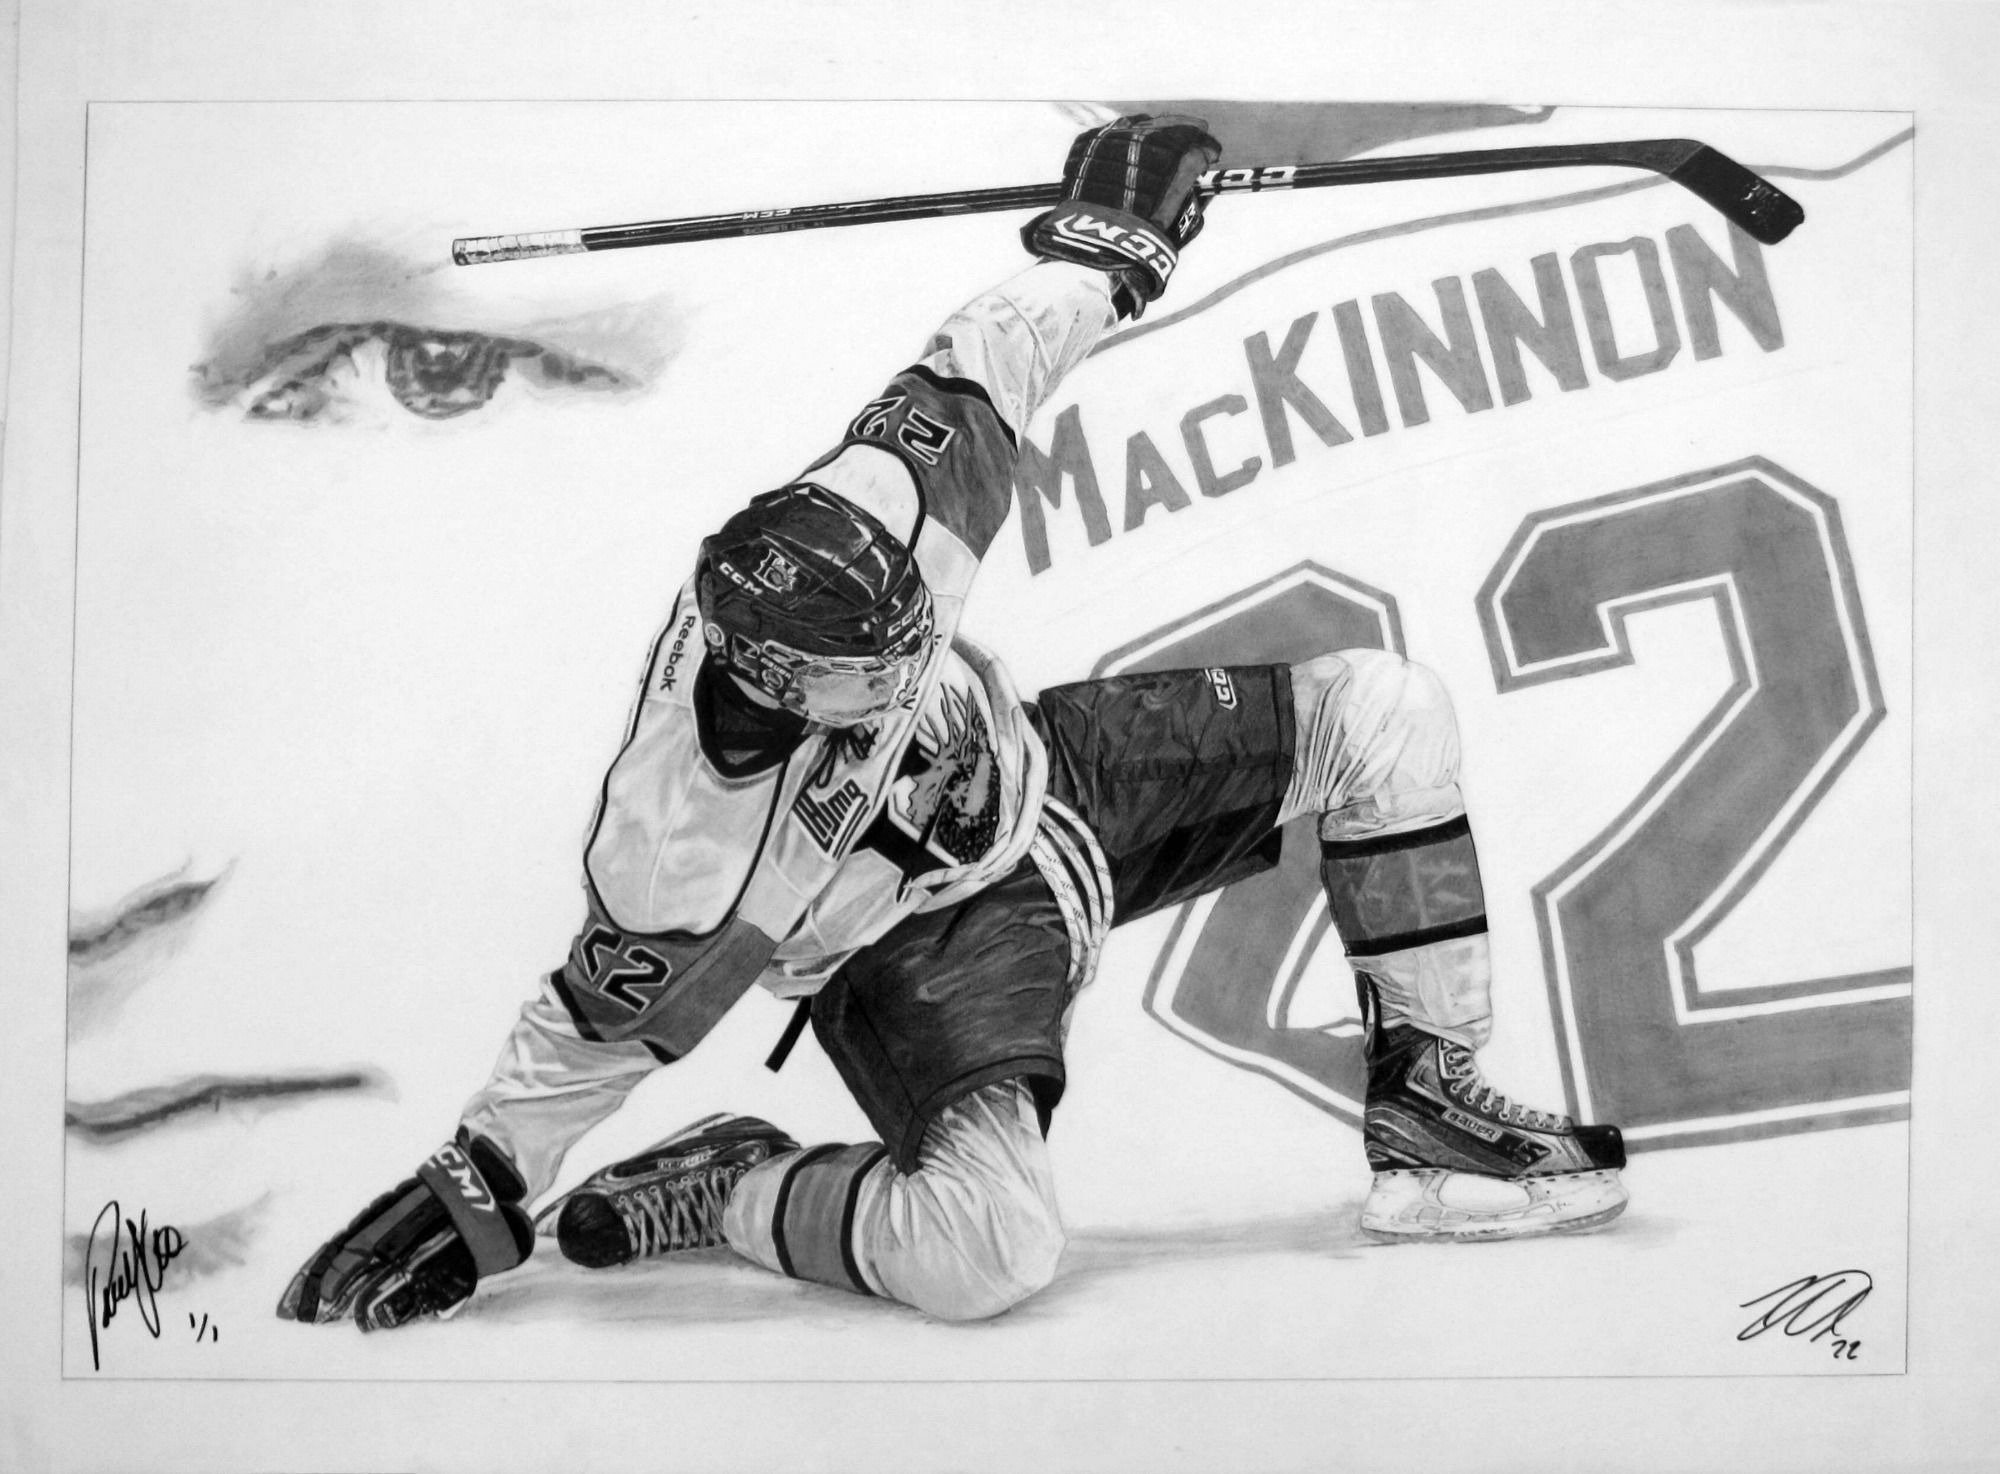 Pencil Drawing By Robb Scott Autographed By Halifax Mooseheads Star Nathan Mackinnon And Artist Robb Scott Sports Drawings Pencil Drawings Sports Art